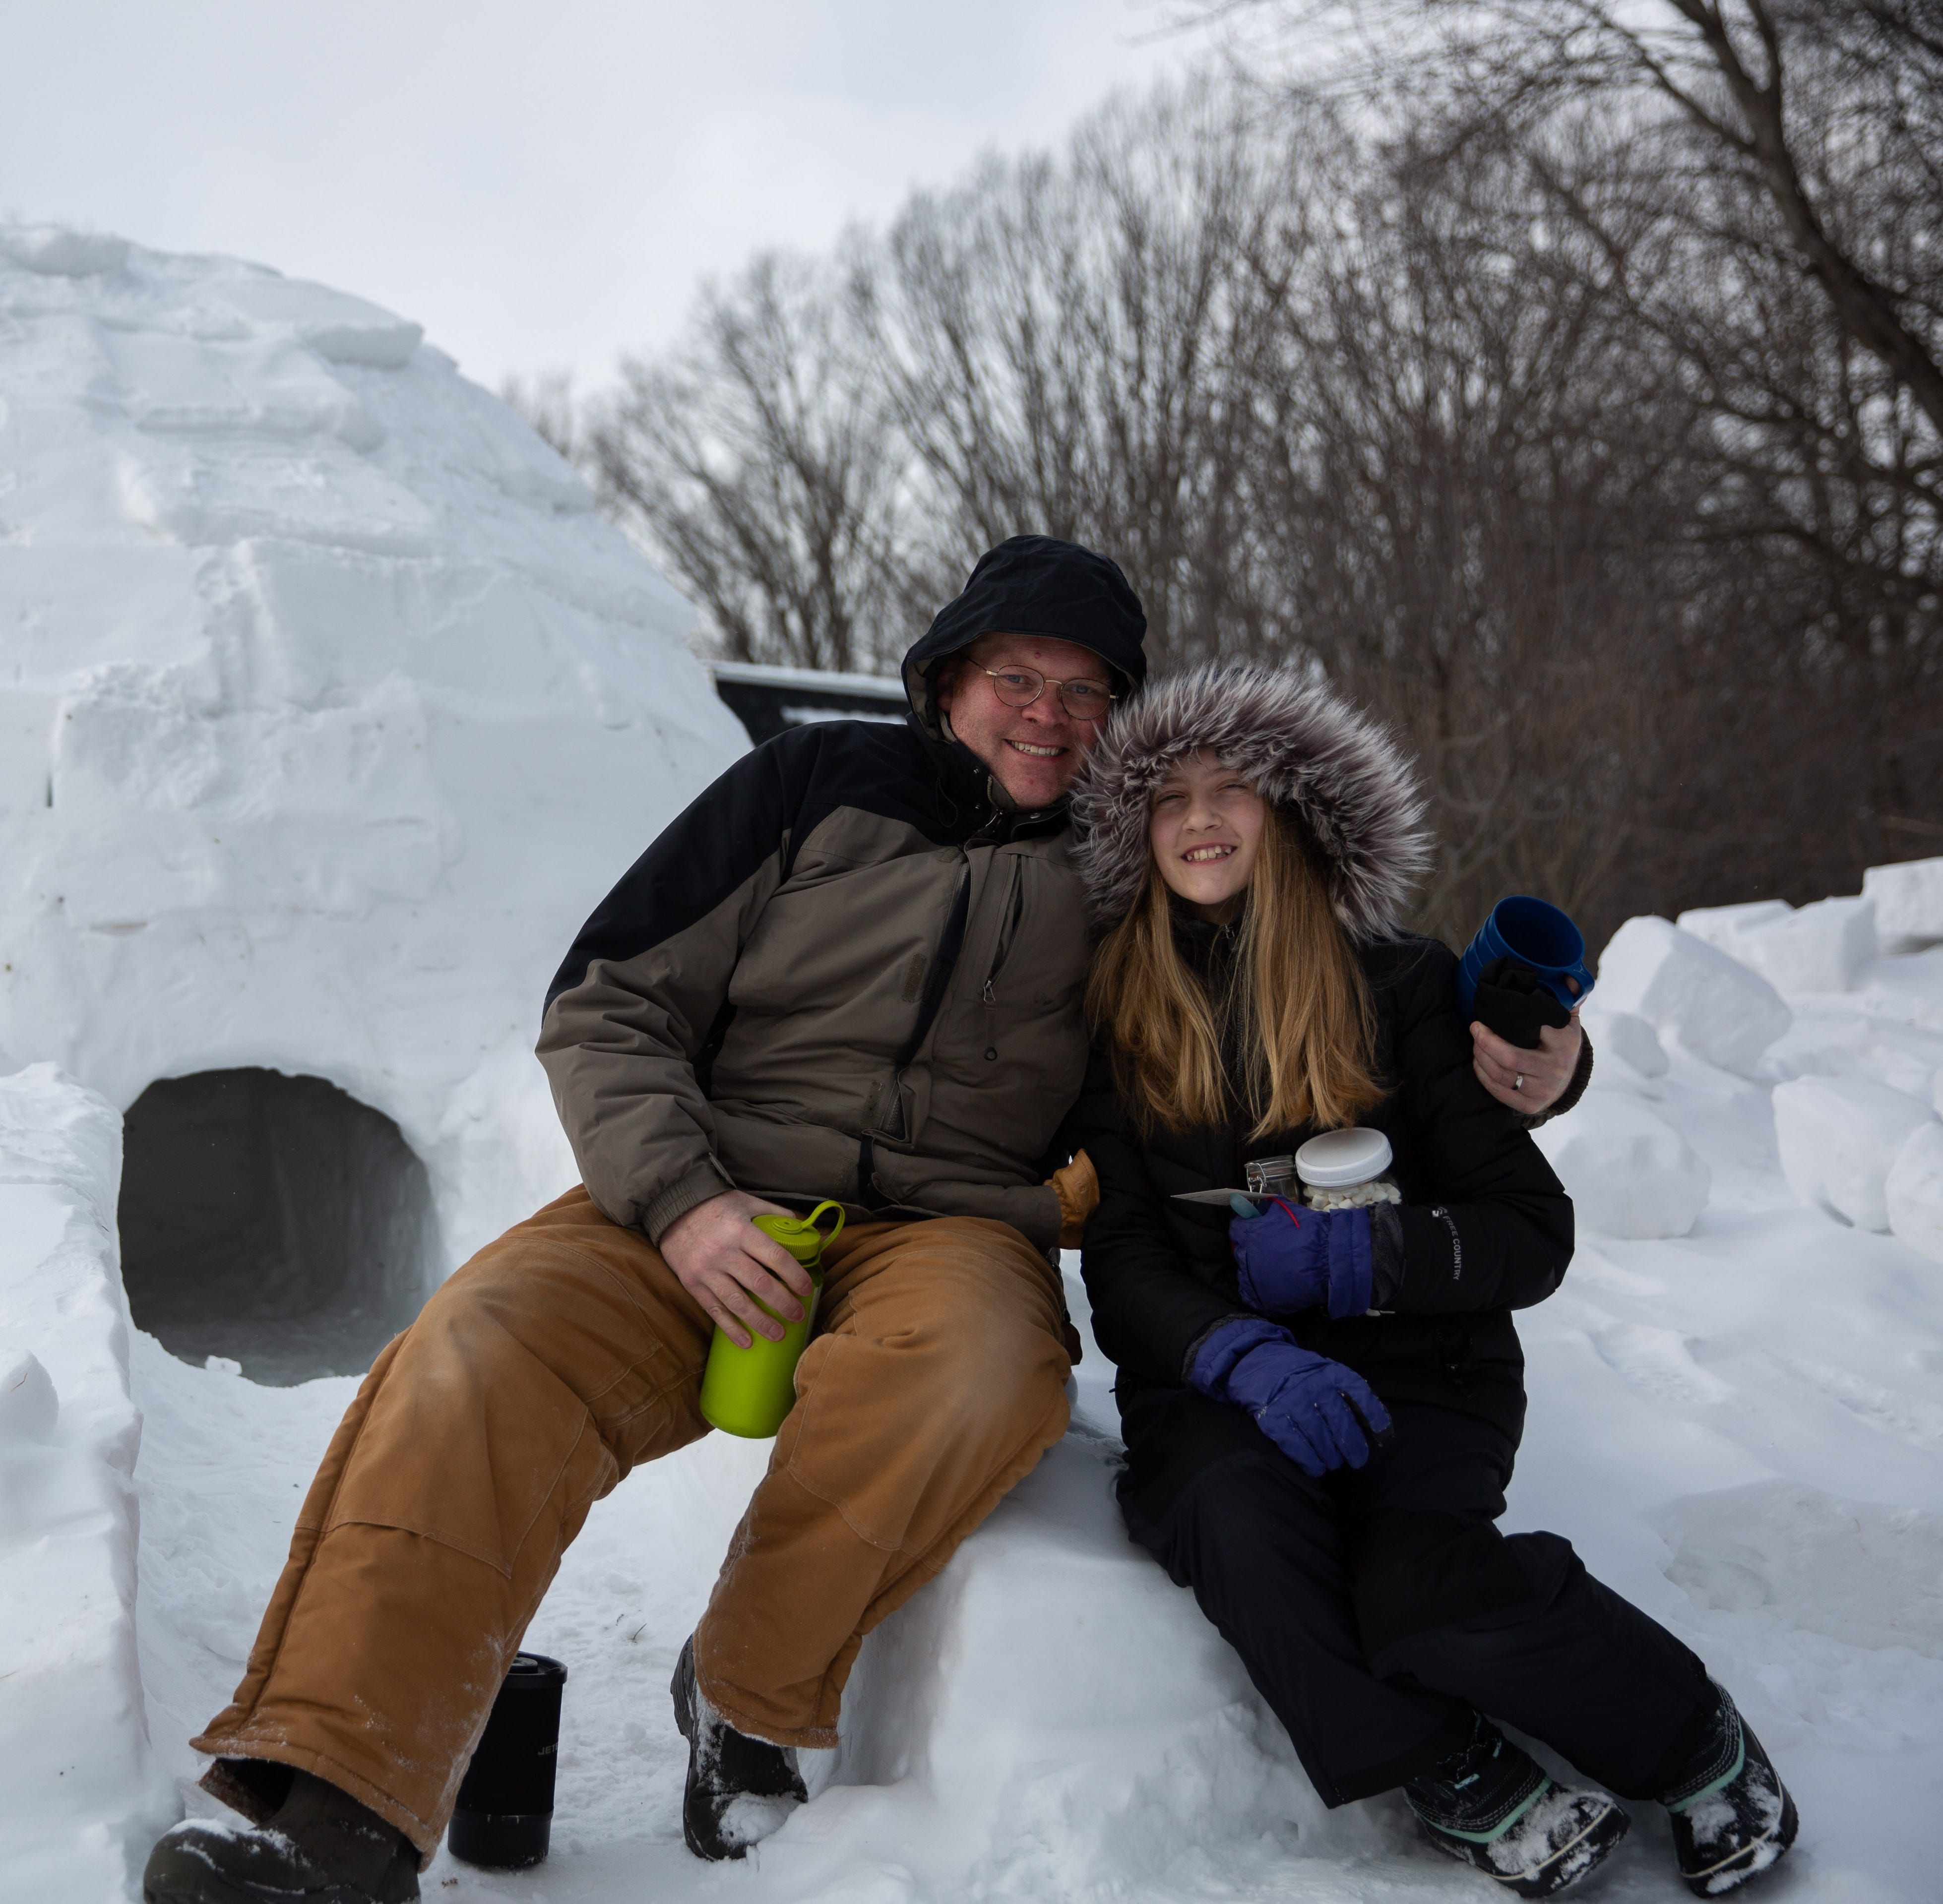 Snow day to the max: Penfield family builds huge igloo, plans to camp out in it overnight